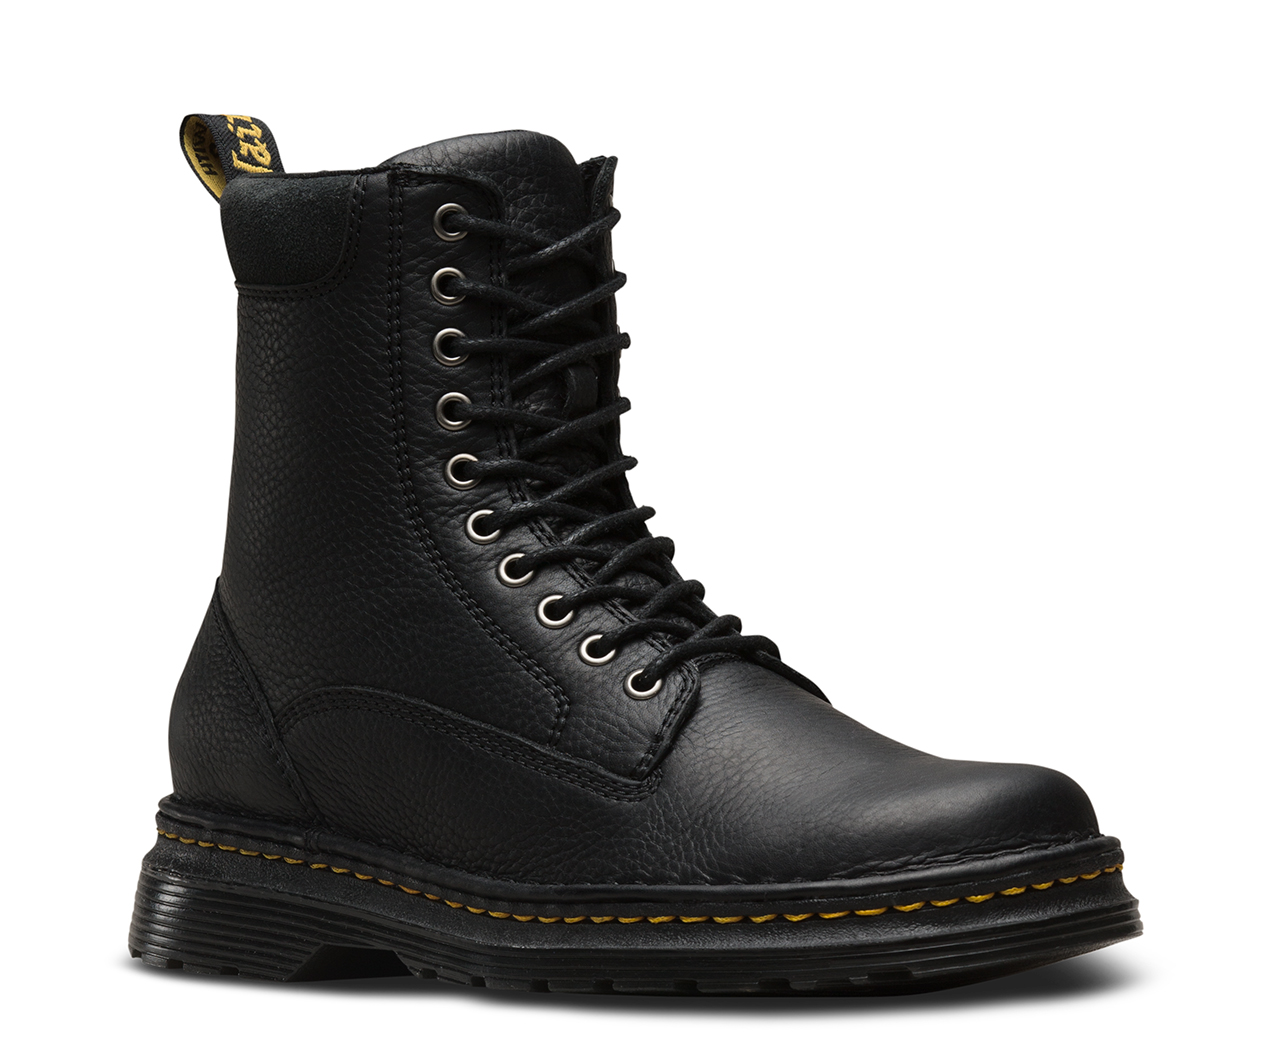 ea23e1eacfae VINCENT | Men's Boots, Shoes & Sandals | Dr. Martens Official